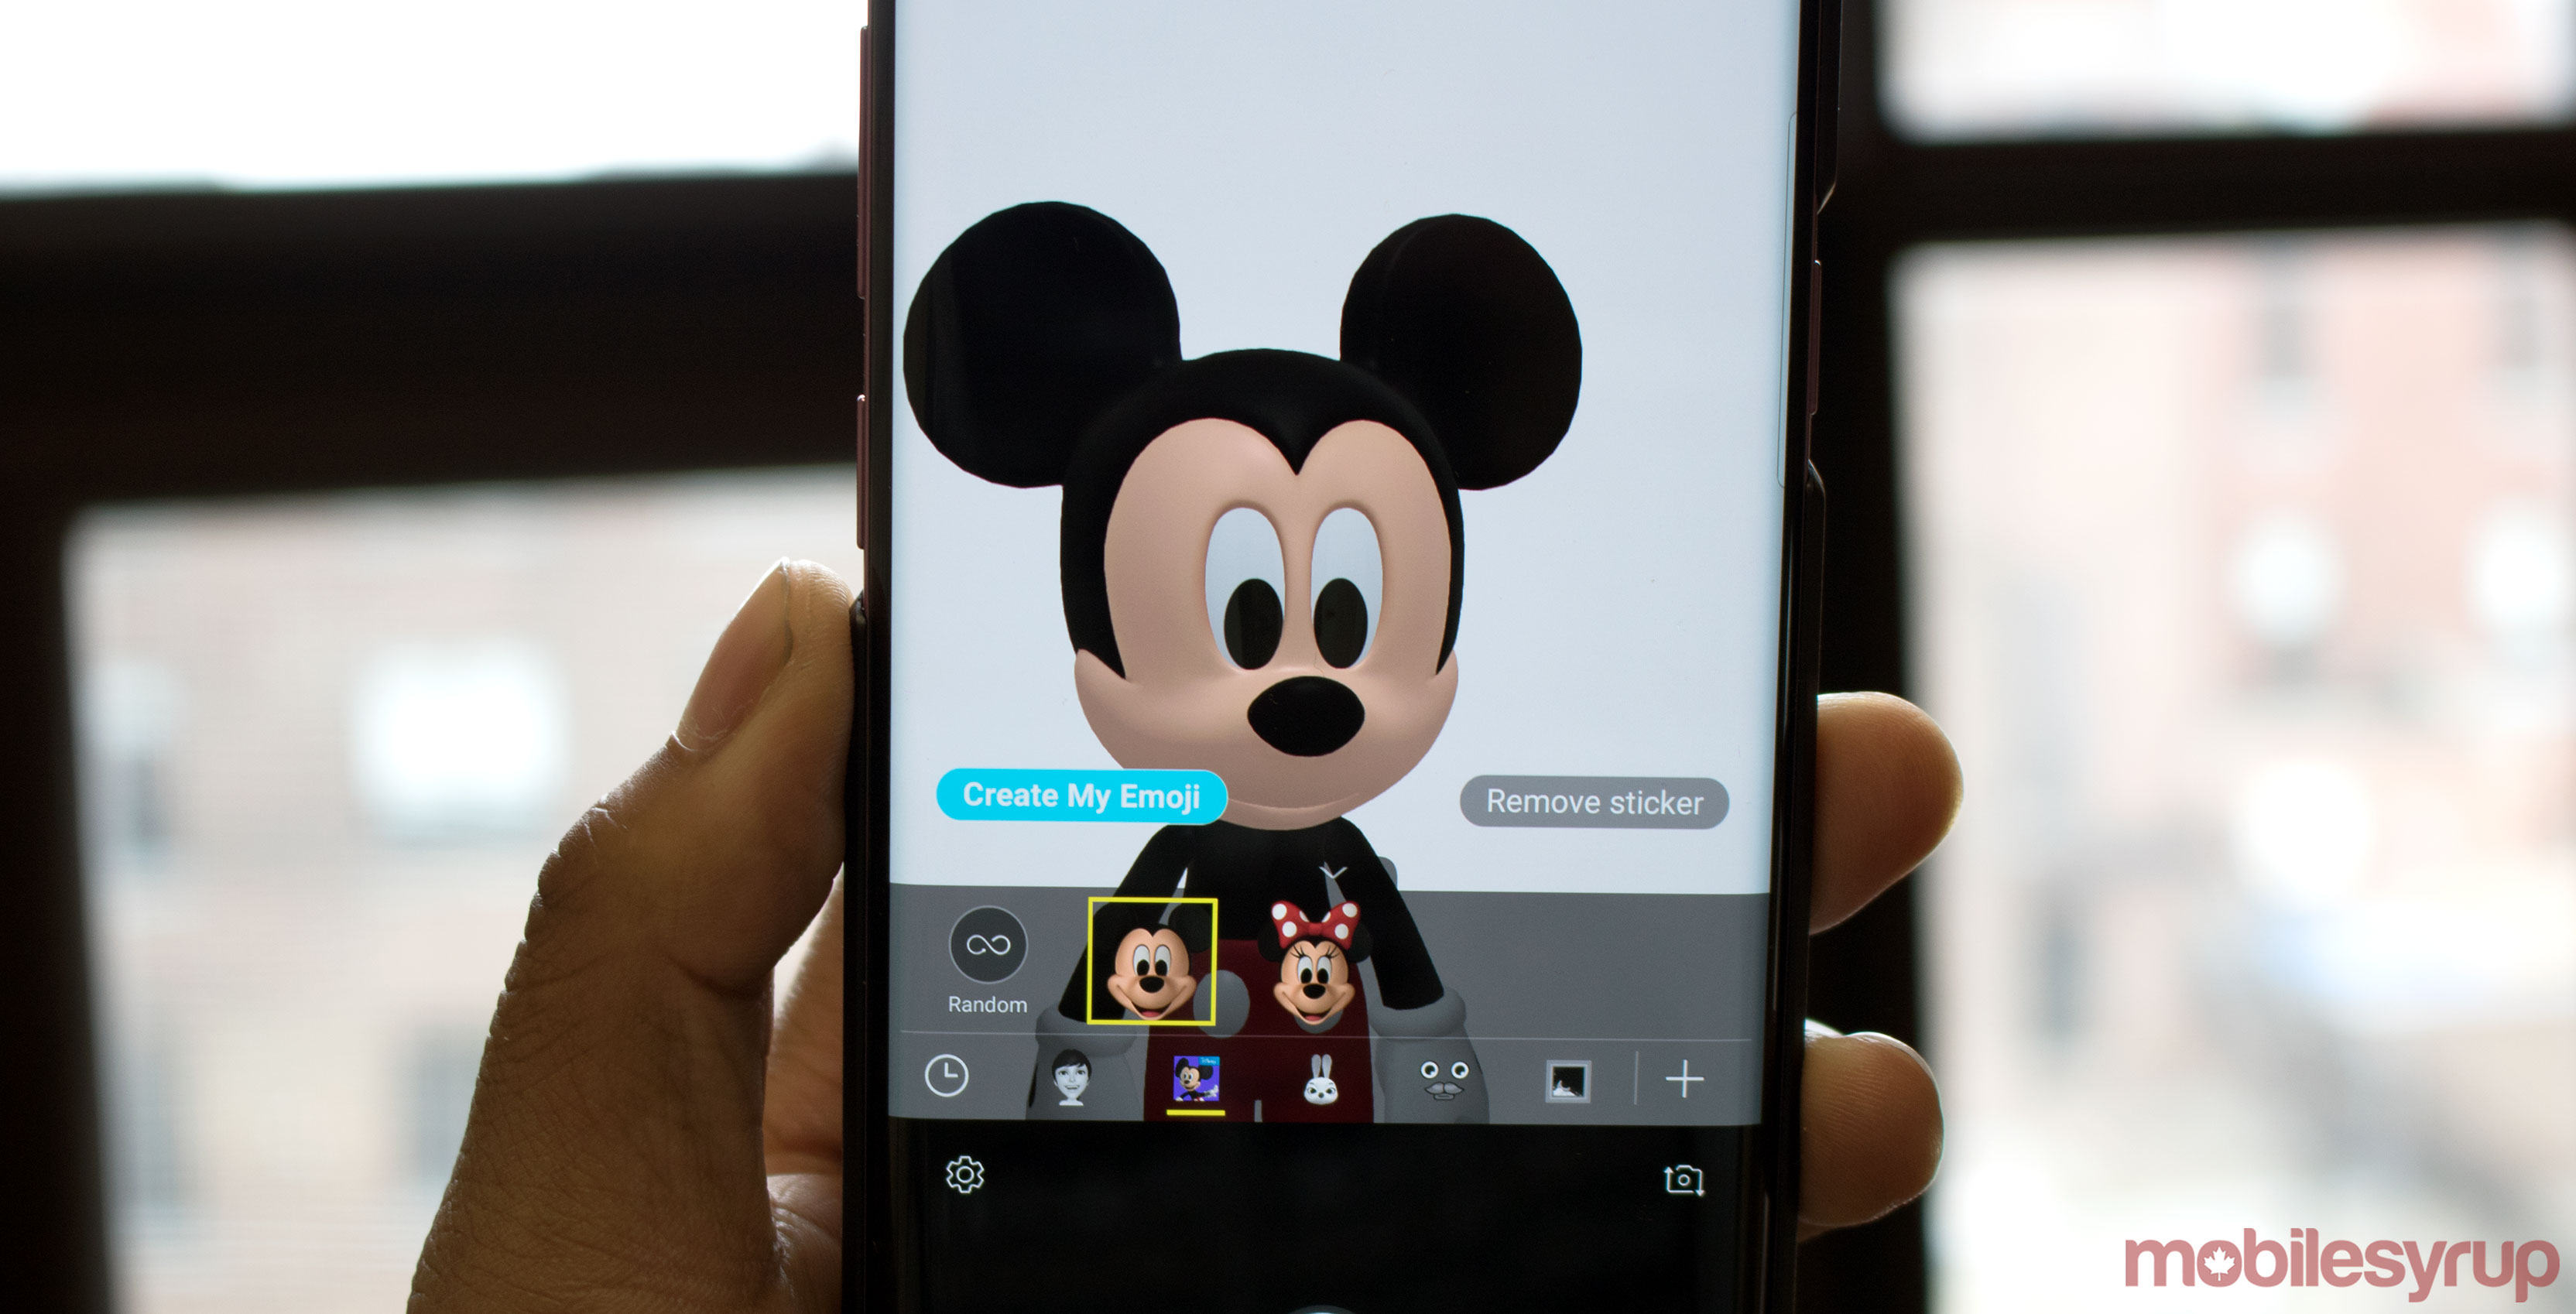 Disney brings Mickey and Minnie to the Galaxy S9's AR Emoji